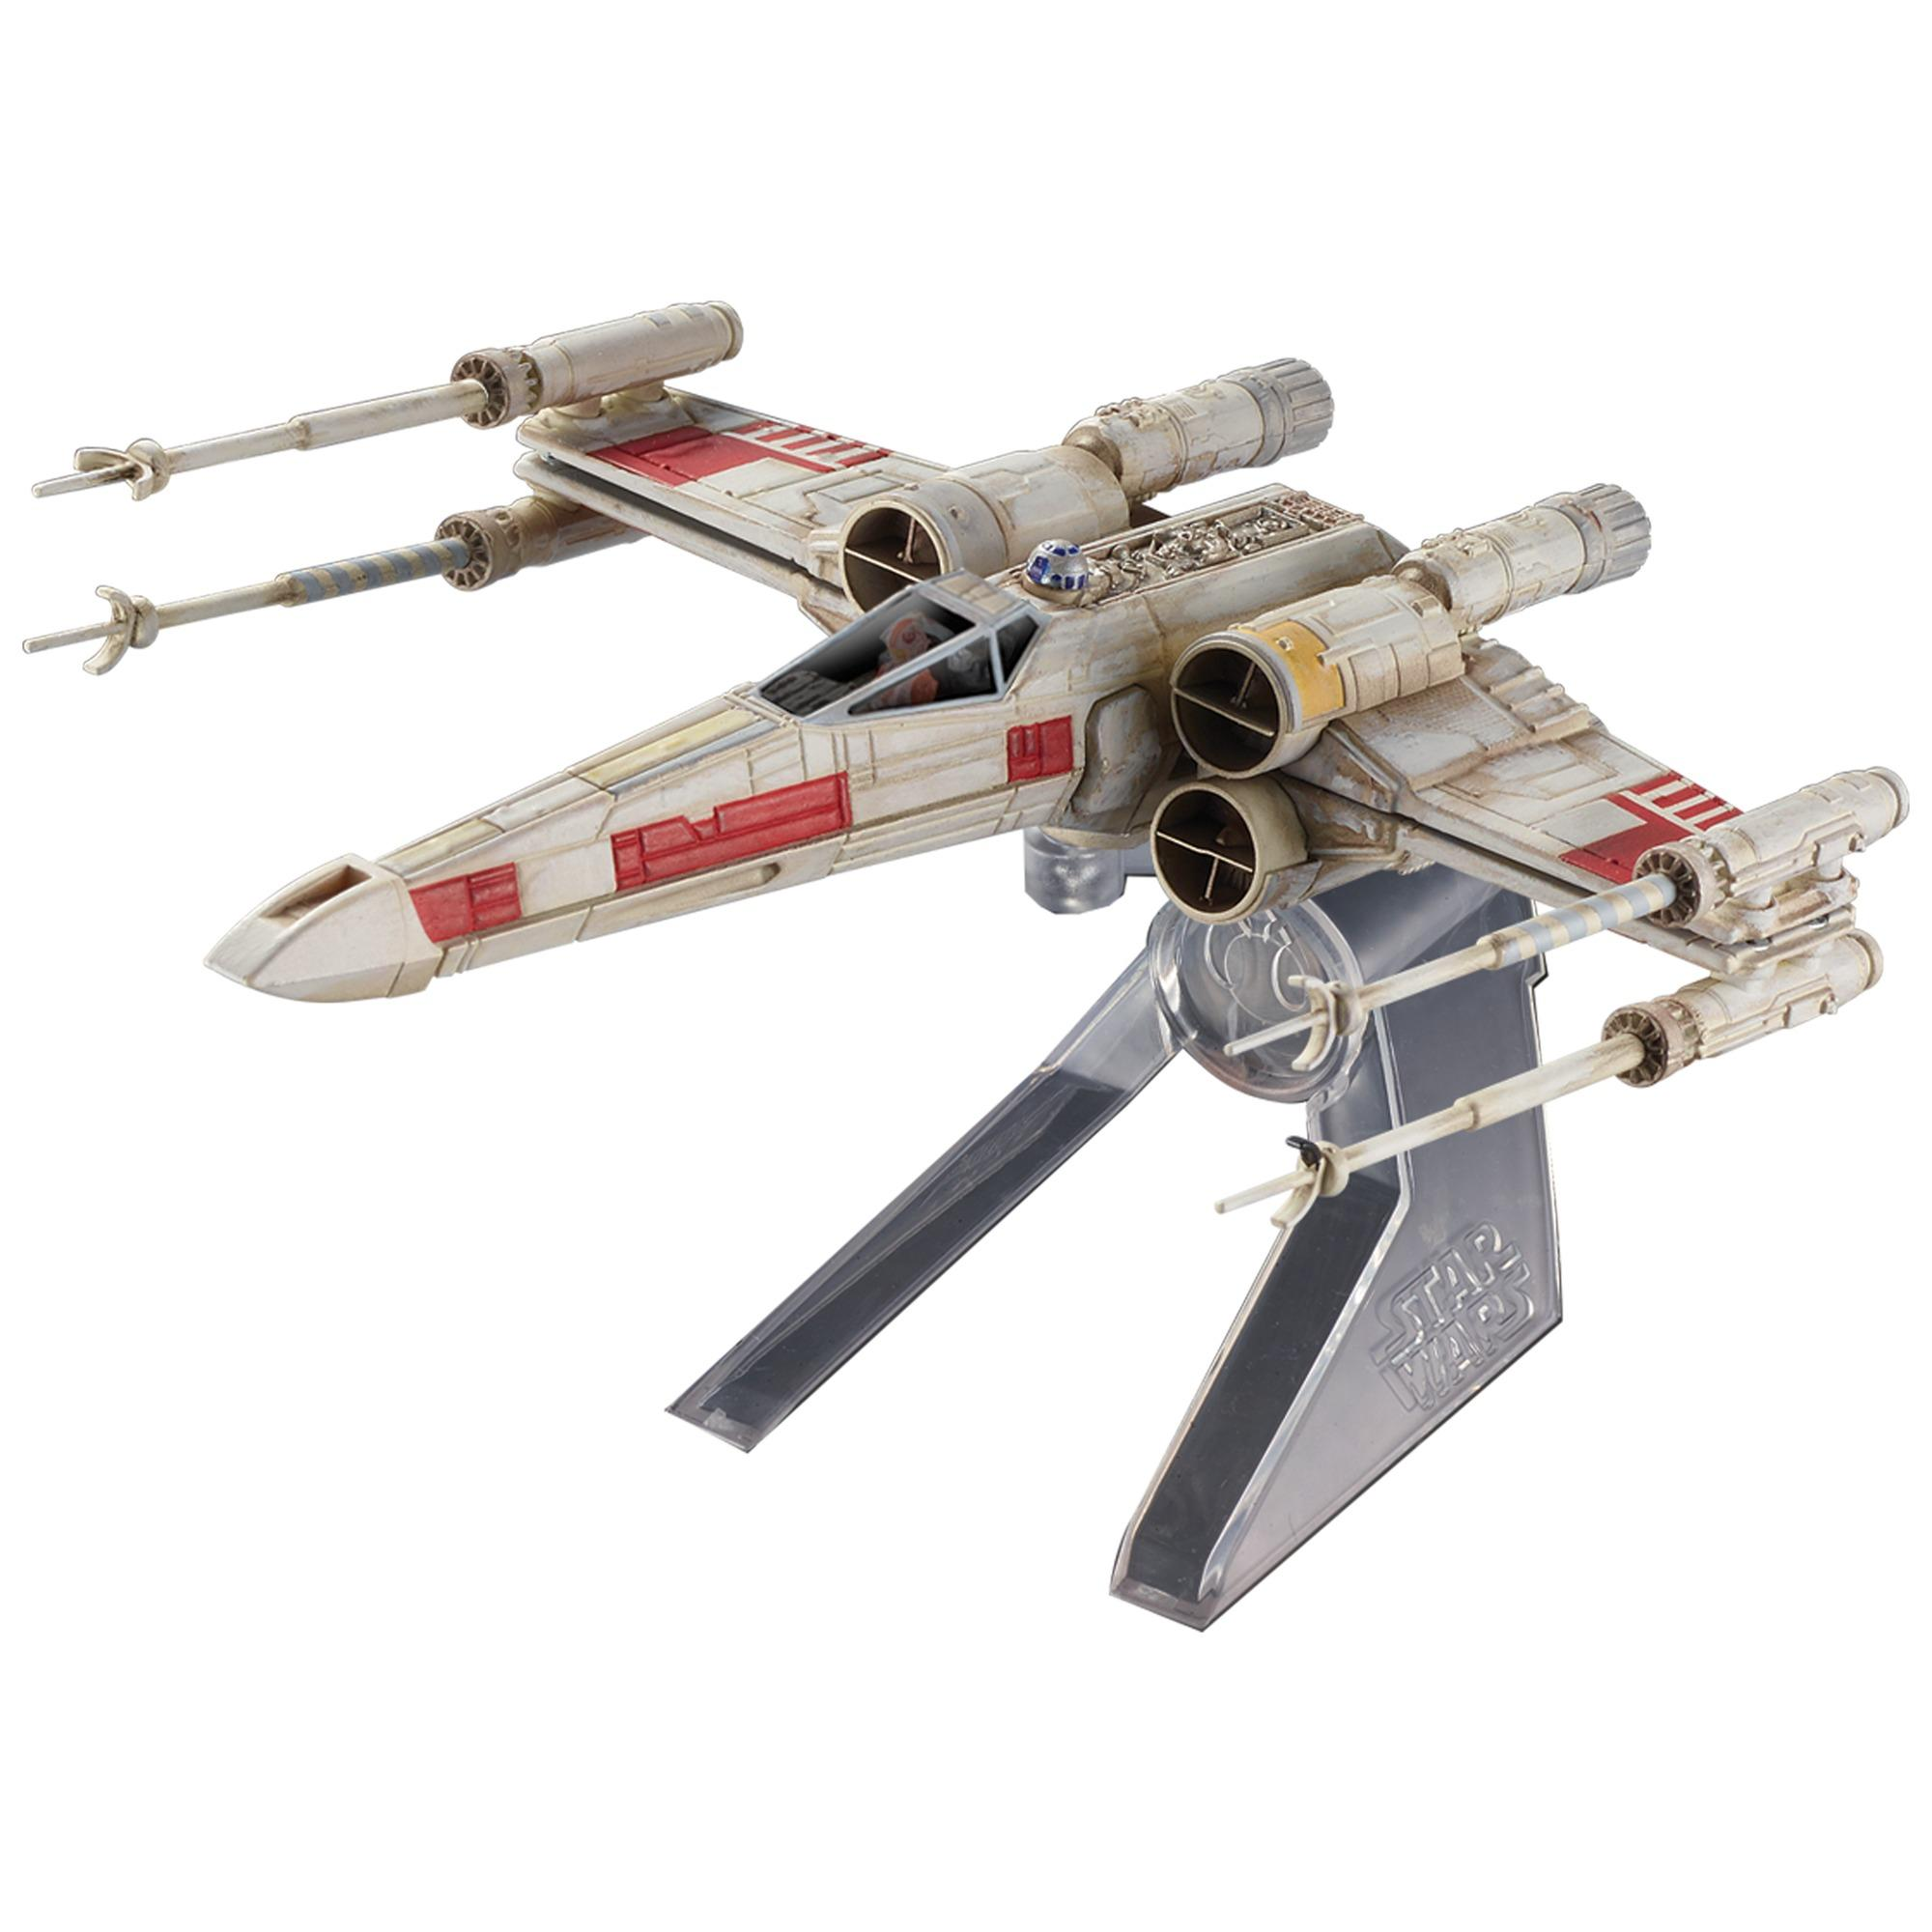 Hot Wheels Star Wars X-Wing Starfighter Red Five Starship